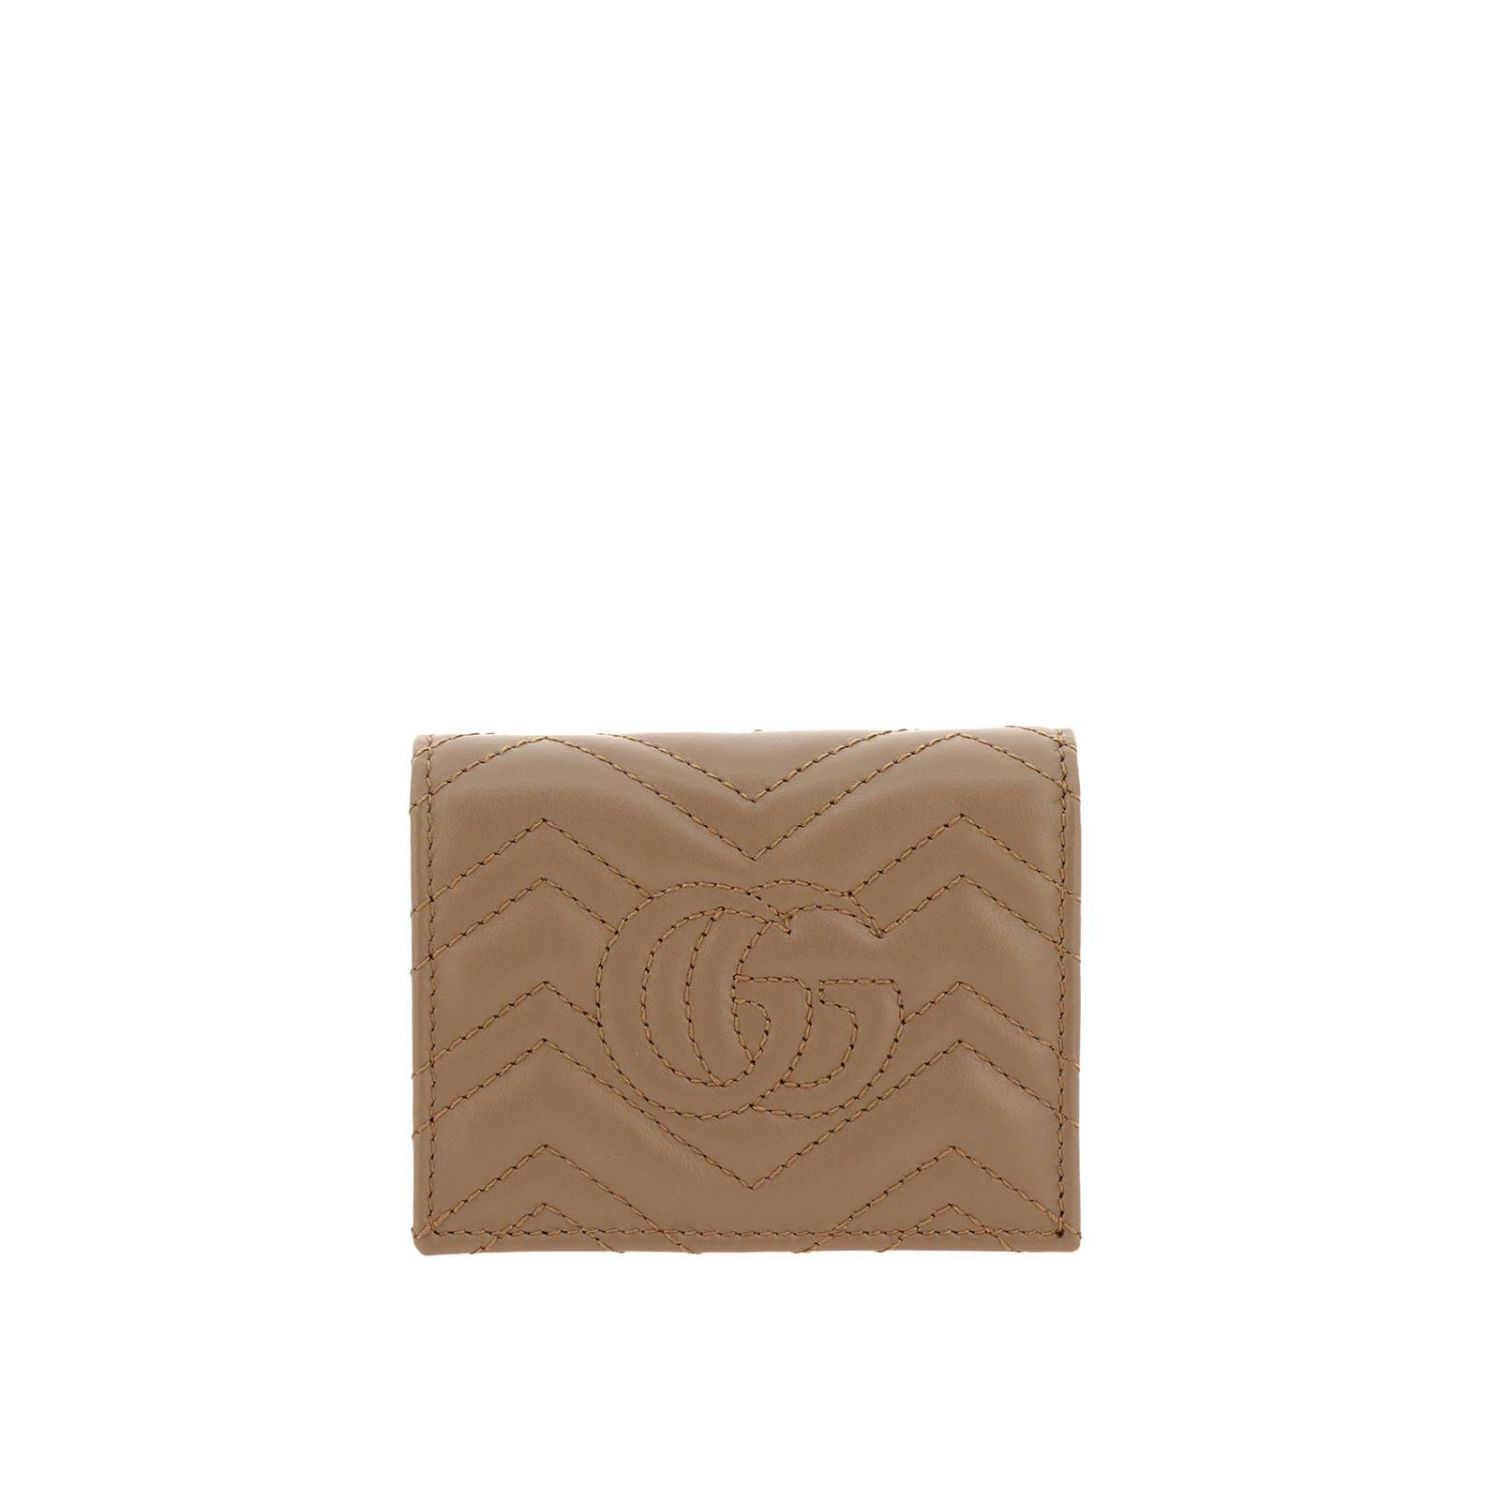 Wallet Gucci: GG Marmont quilted leather walletwith coin holder and Gucci monogram beige 3